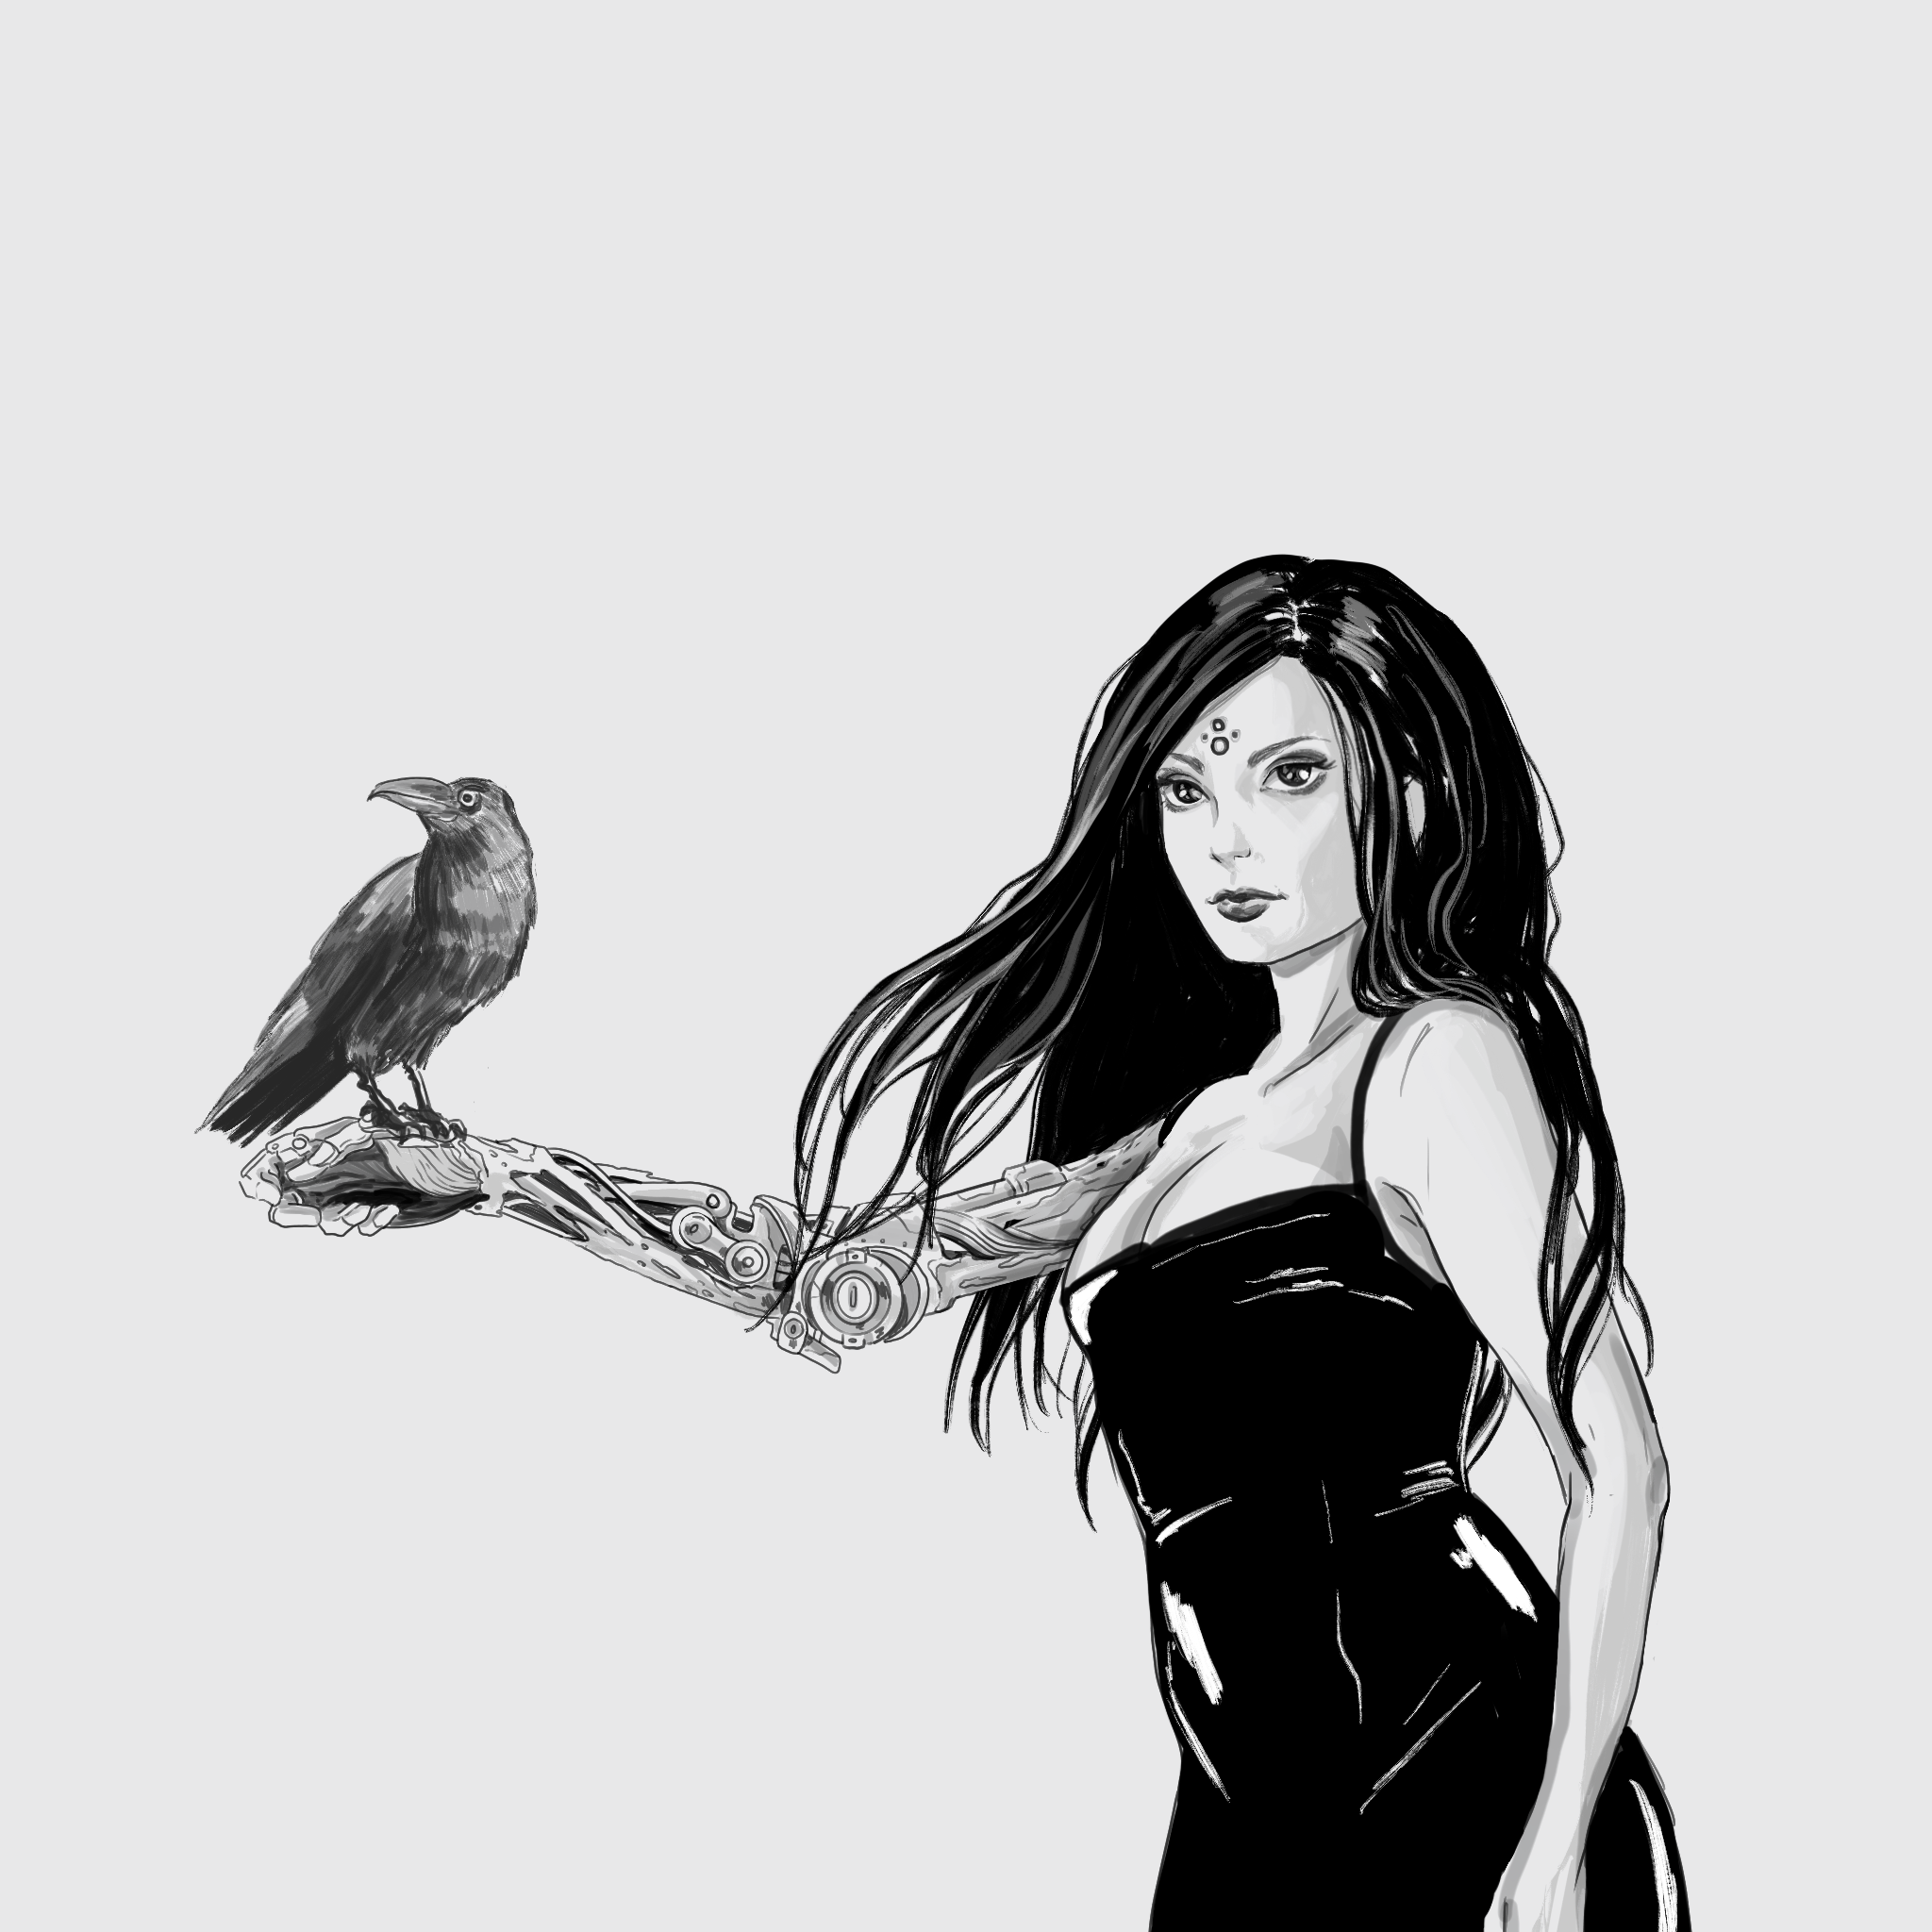 Lady Death and the Crow